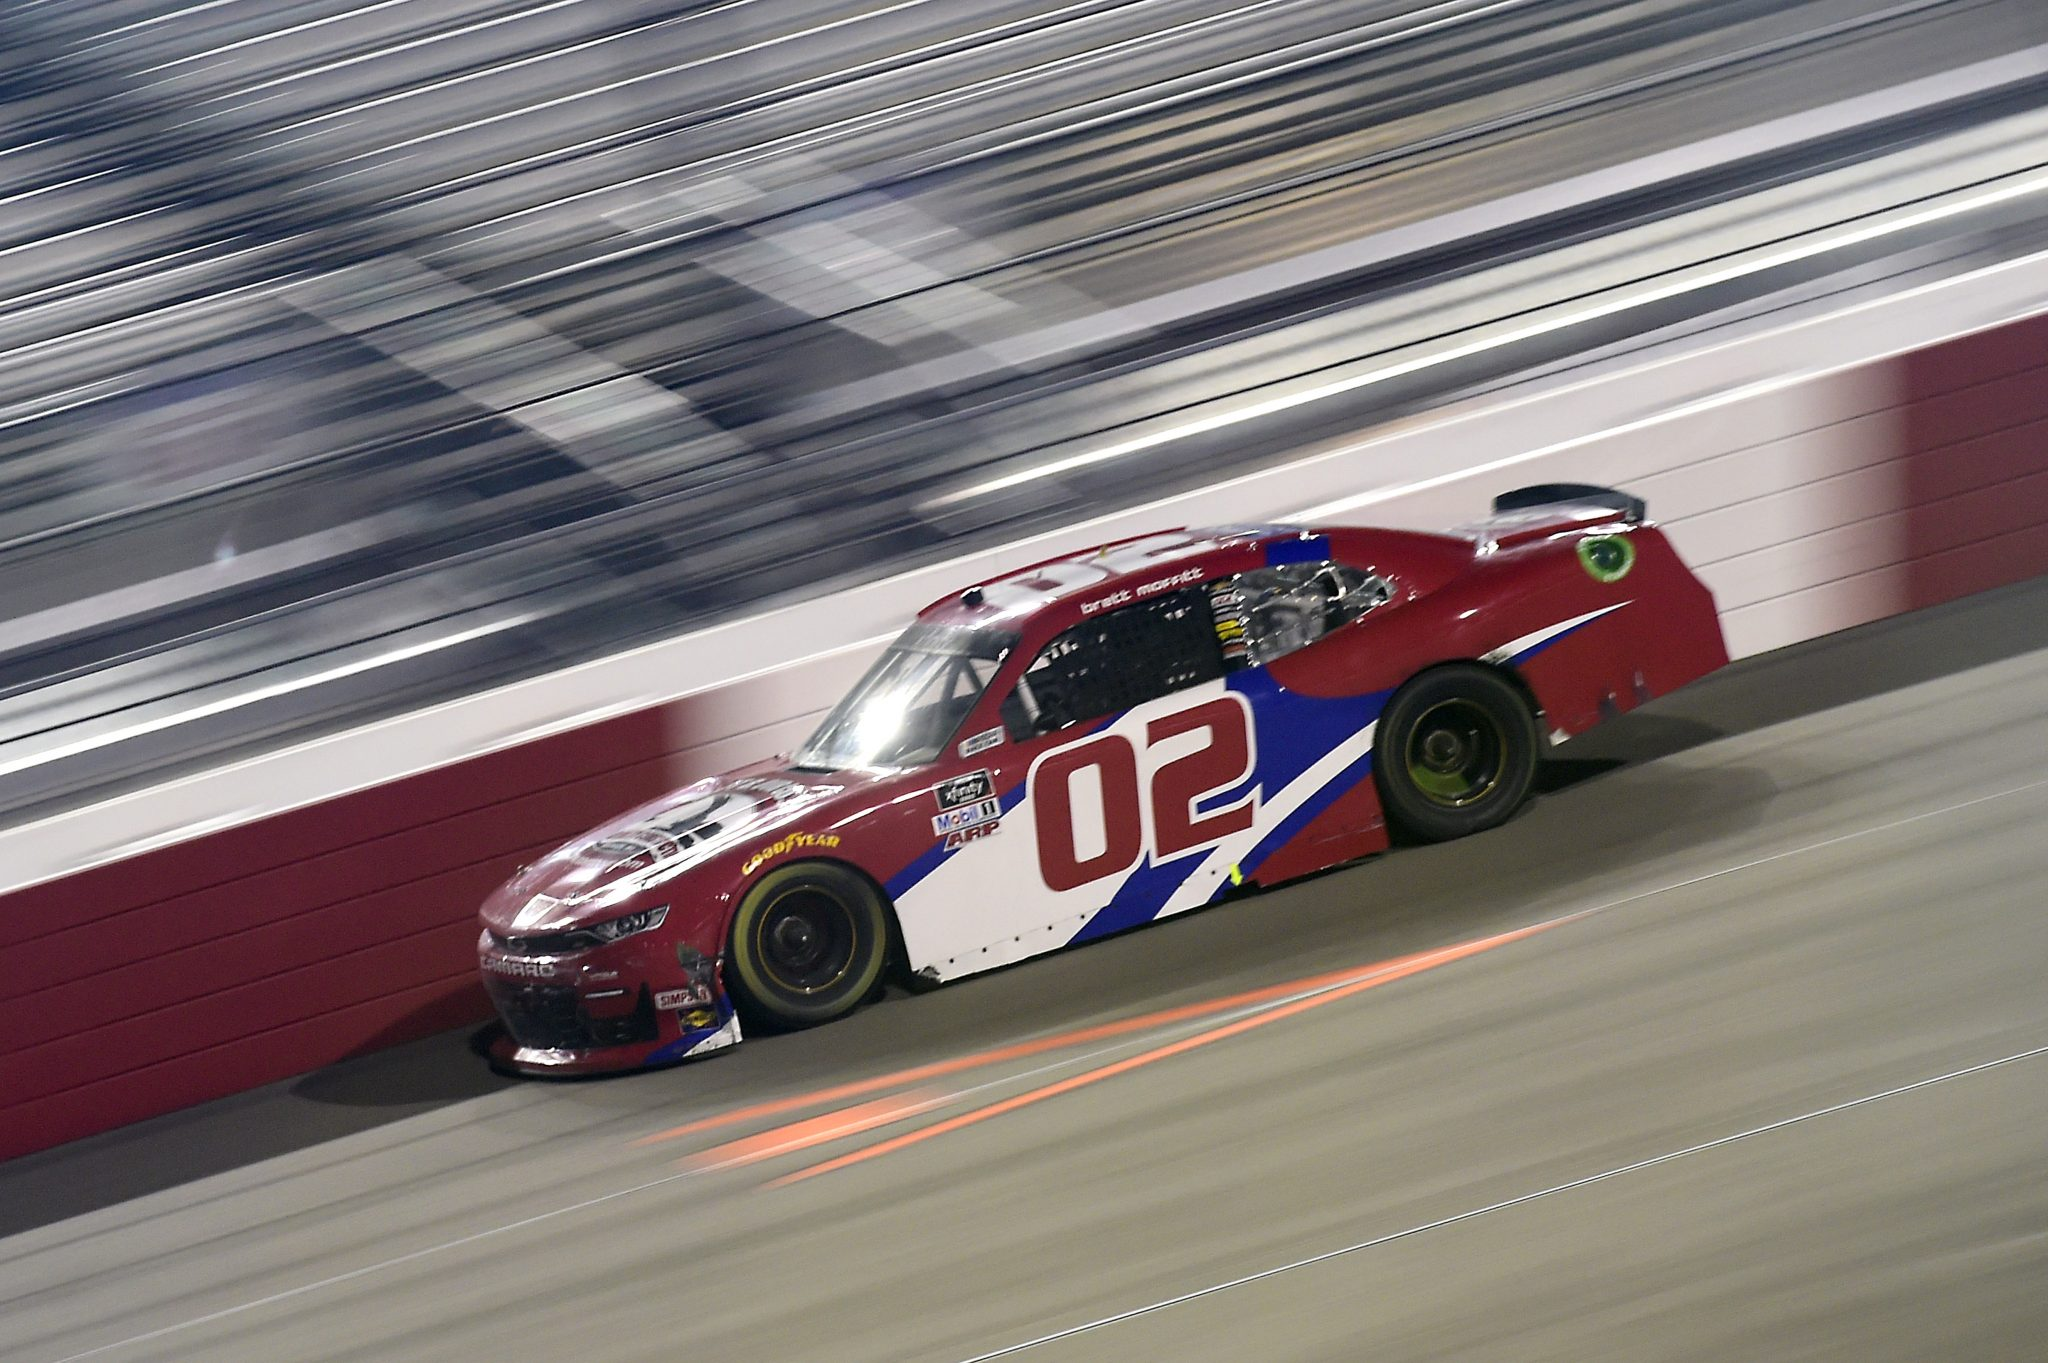 RICHMOND, VIRGINIA - SEPTEMBER 11: Brett Moffitt, driver of the #02 Robert B Our Inc Co Chevrolet, drives during the NASCAR Xfinity Series Go Bowling 250 at Richmond Raceway on September 11, 2020 in Richmond, Virginia. (Photo by Jared C. Tilton/Getty Images) | Getty Images